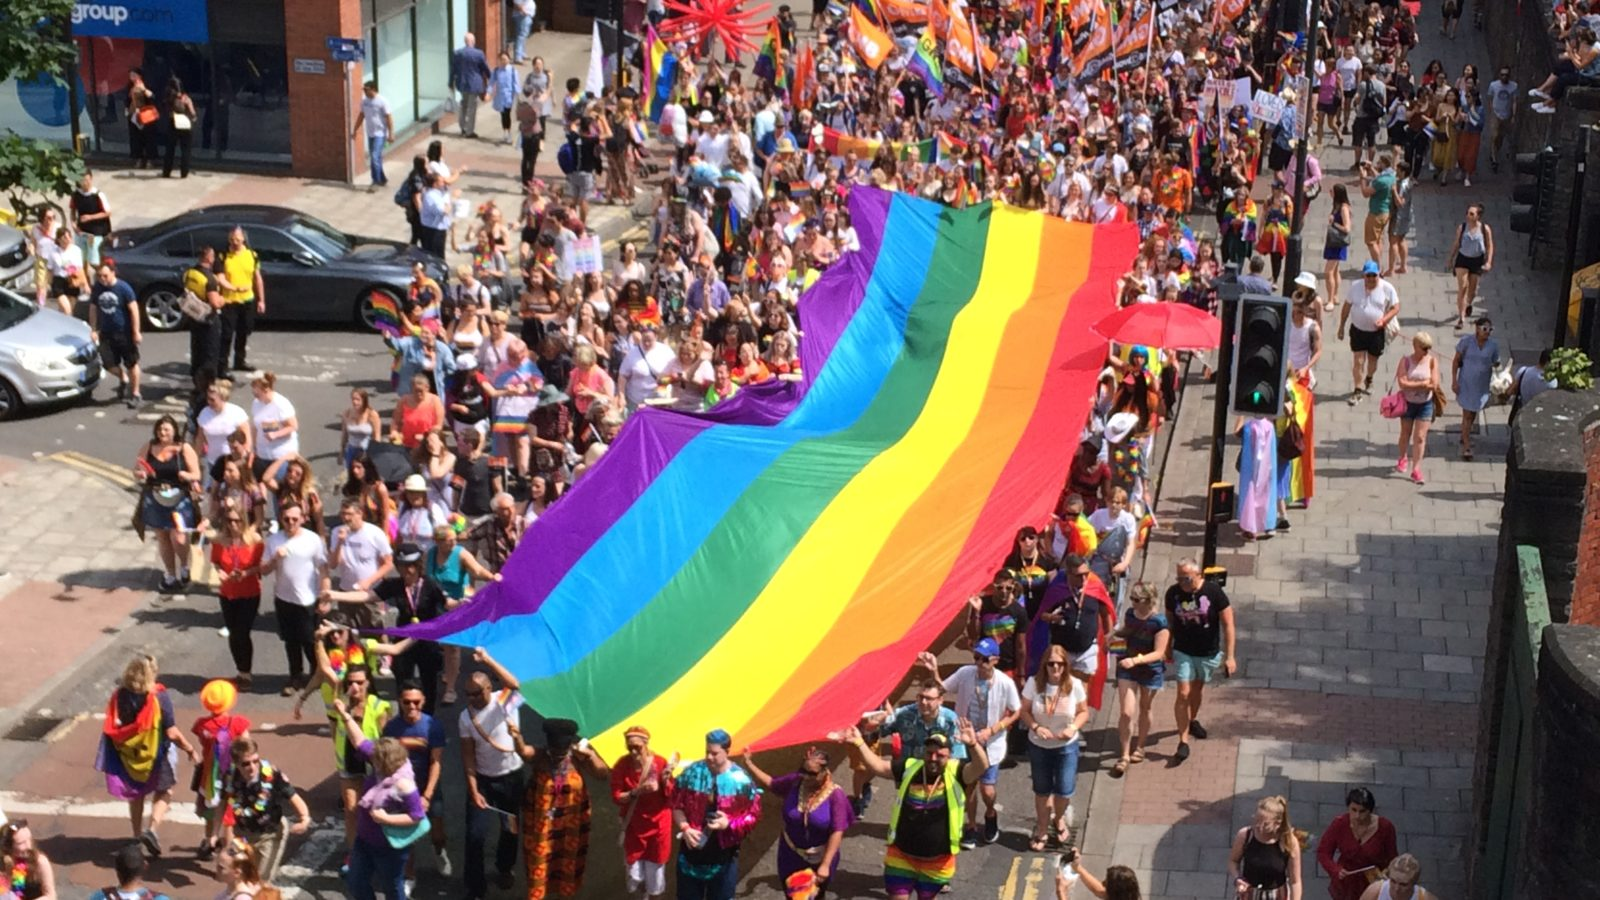 Bristol's oldest LGBT youth group is celebrating 25 years of helping the LGBT community.